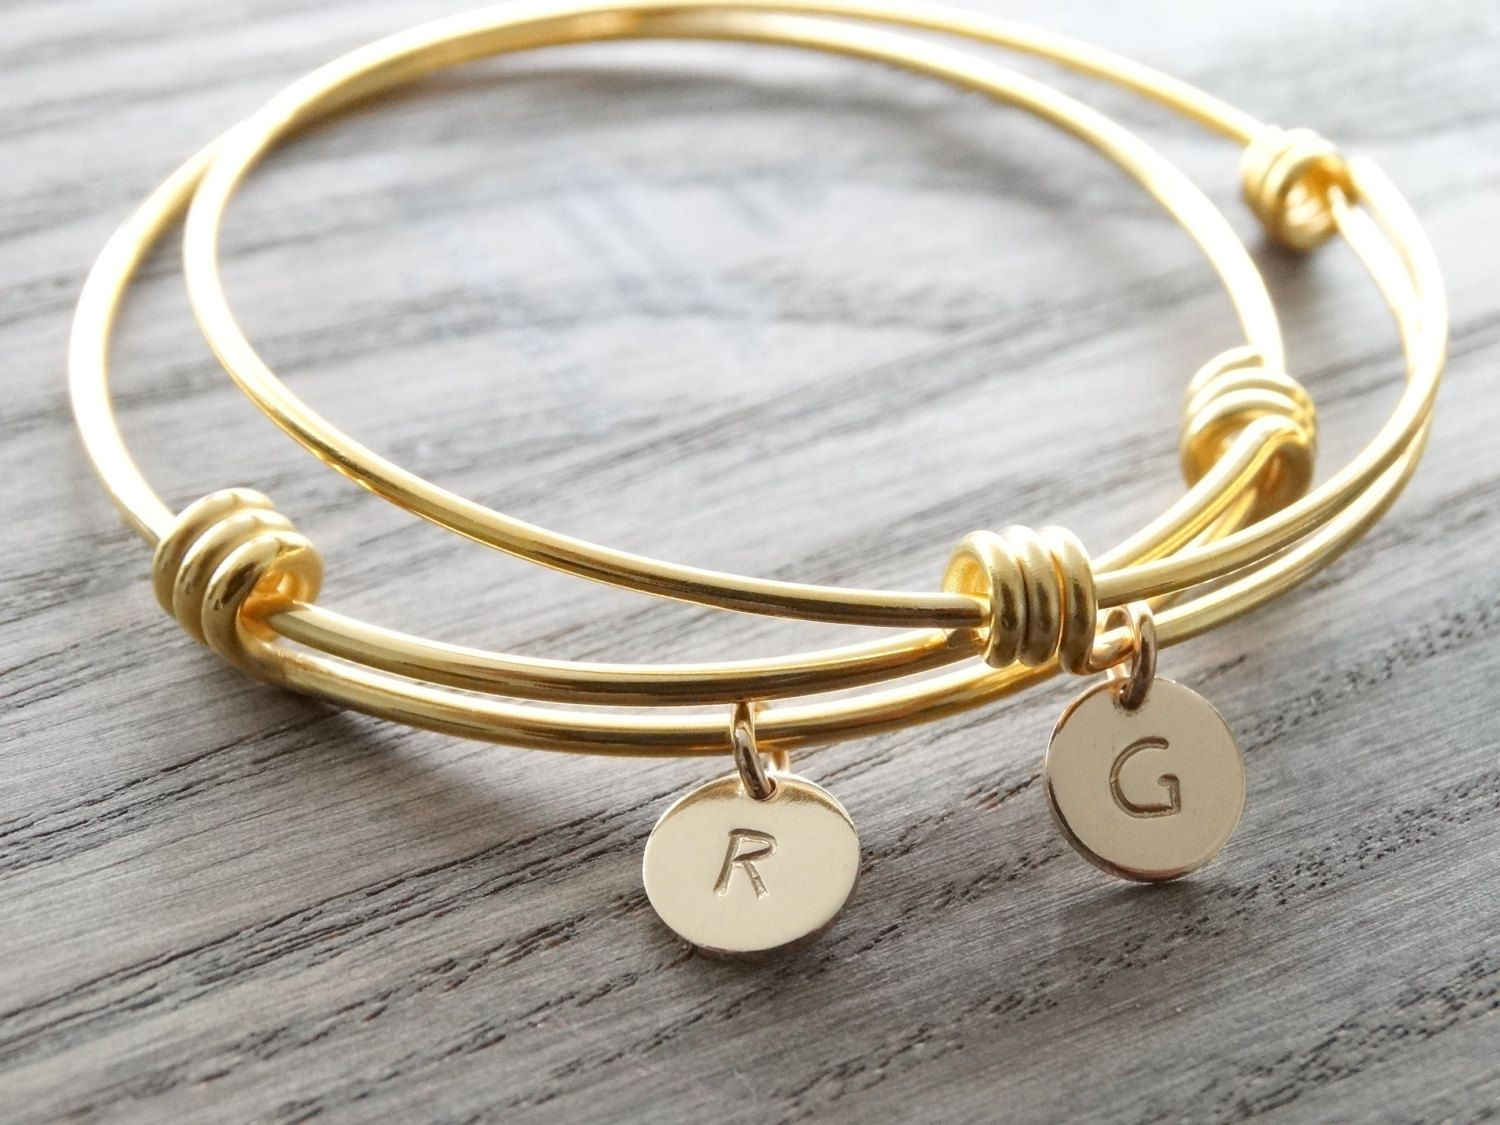 Set of initial bangle bracelets personalized initial bracelet